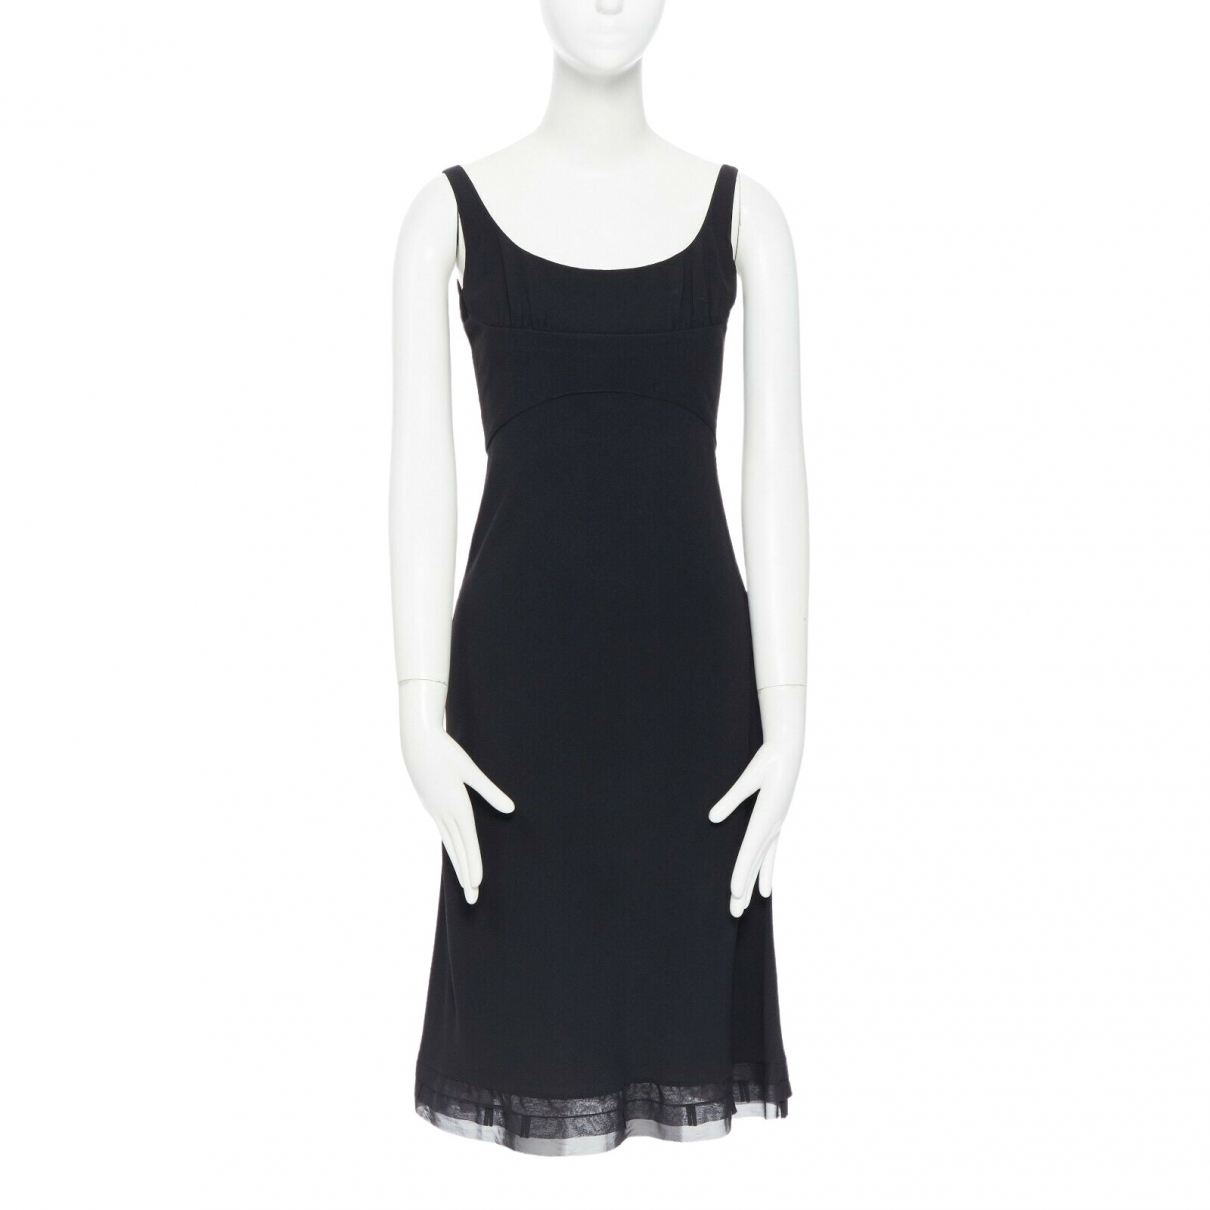 Prada \N Black dress for Women 40 IT